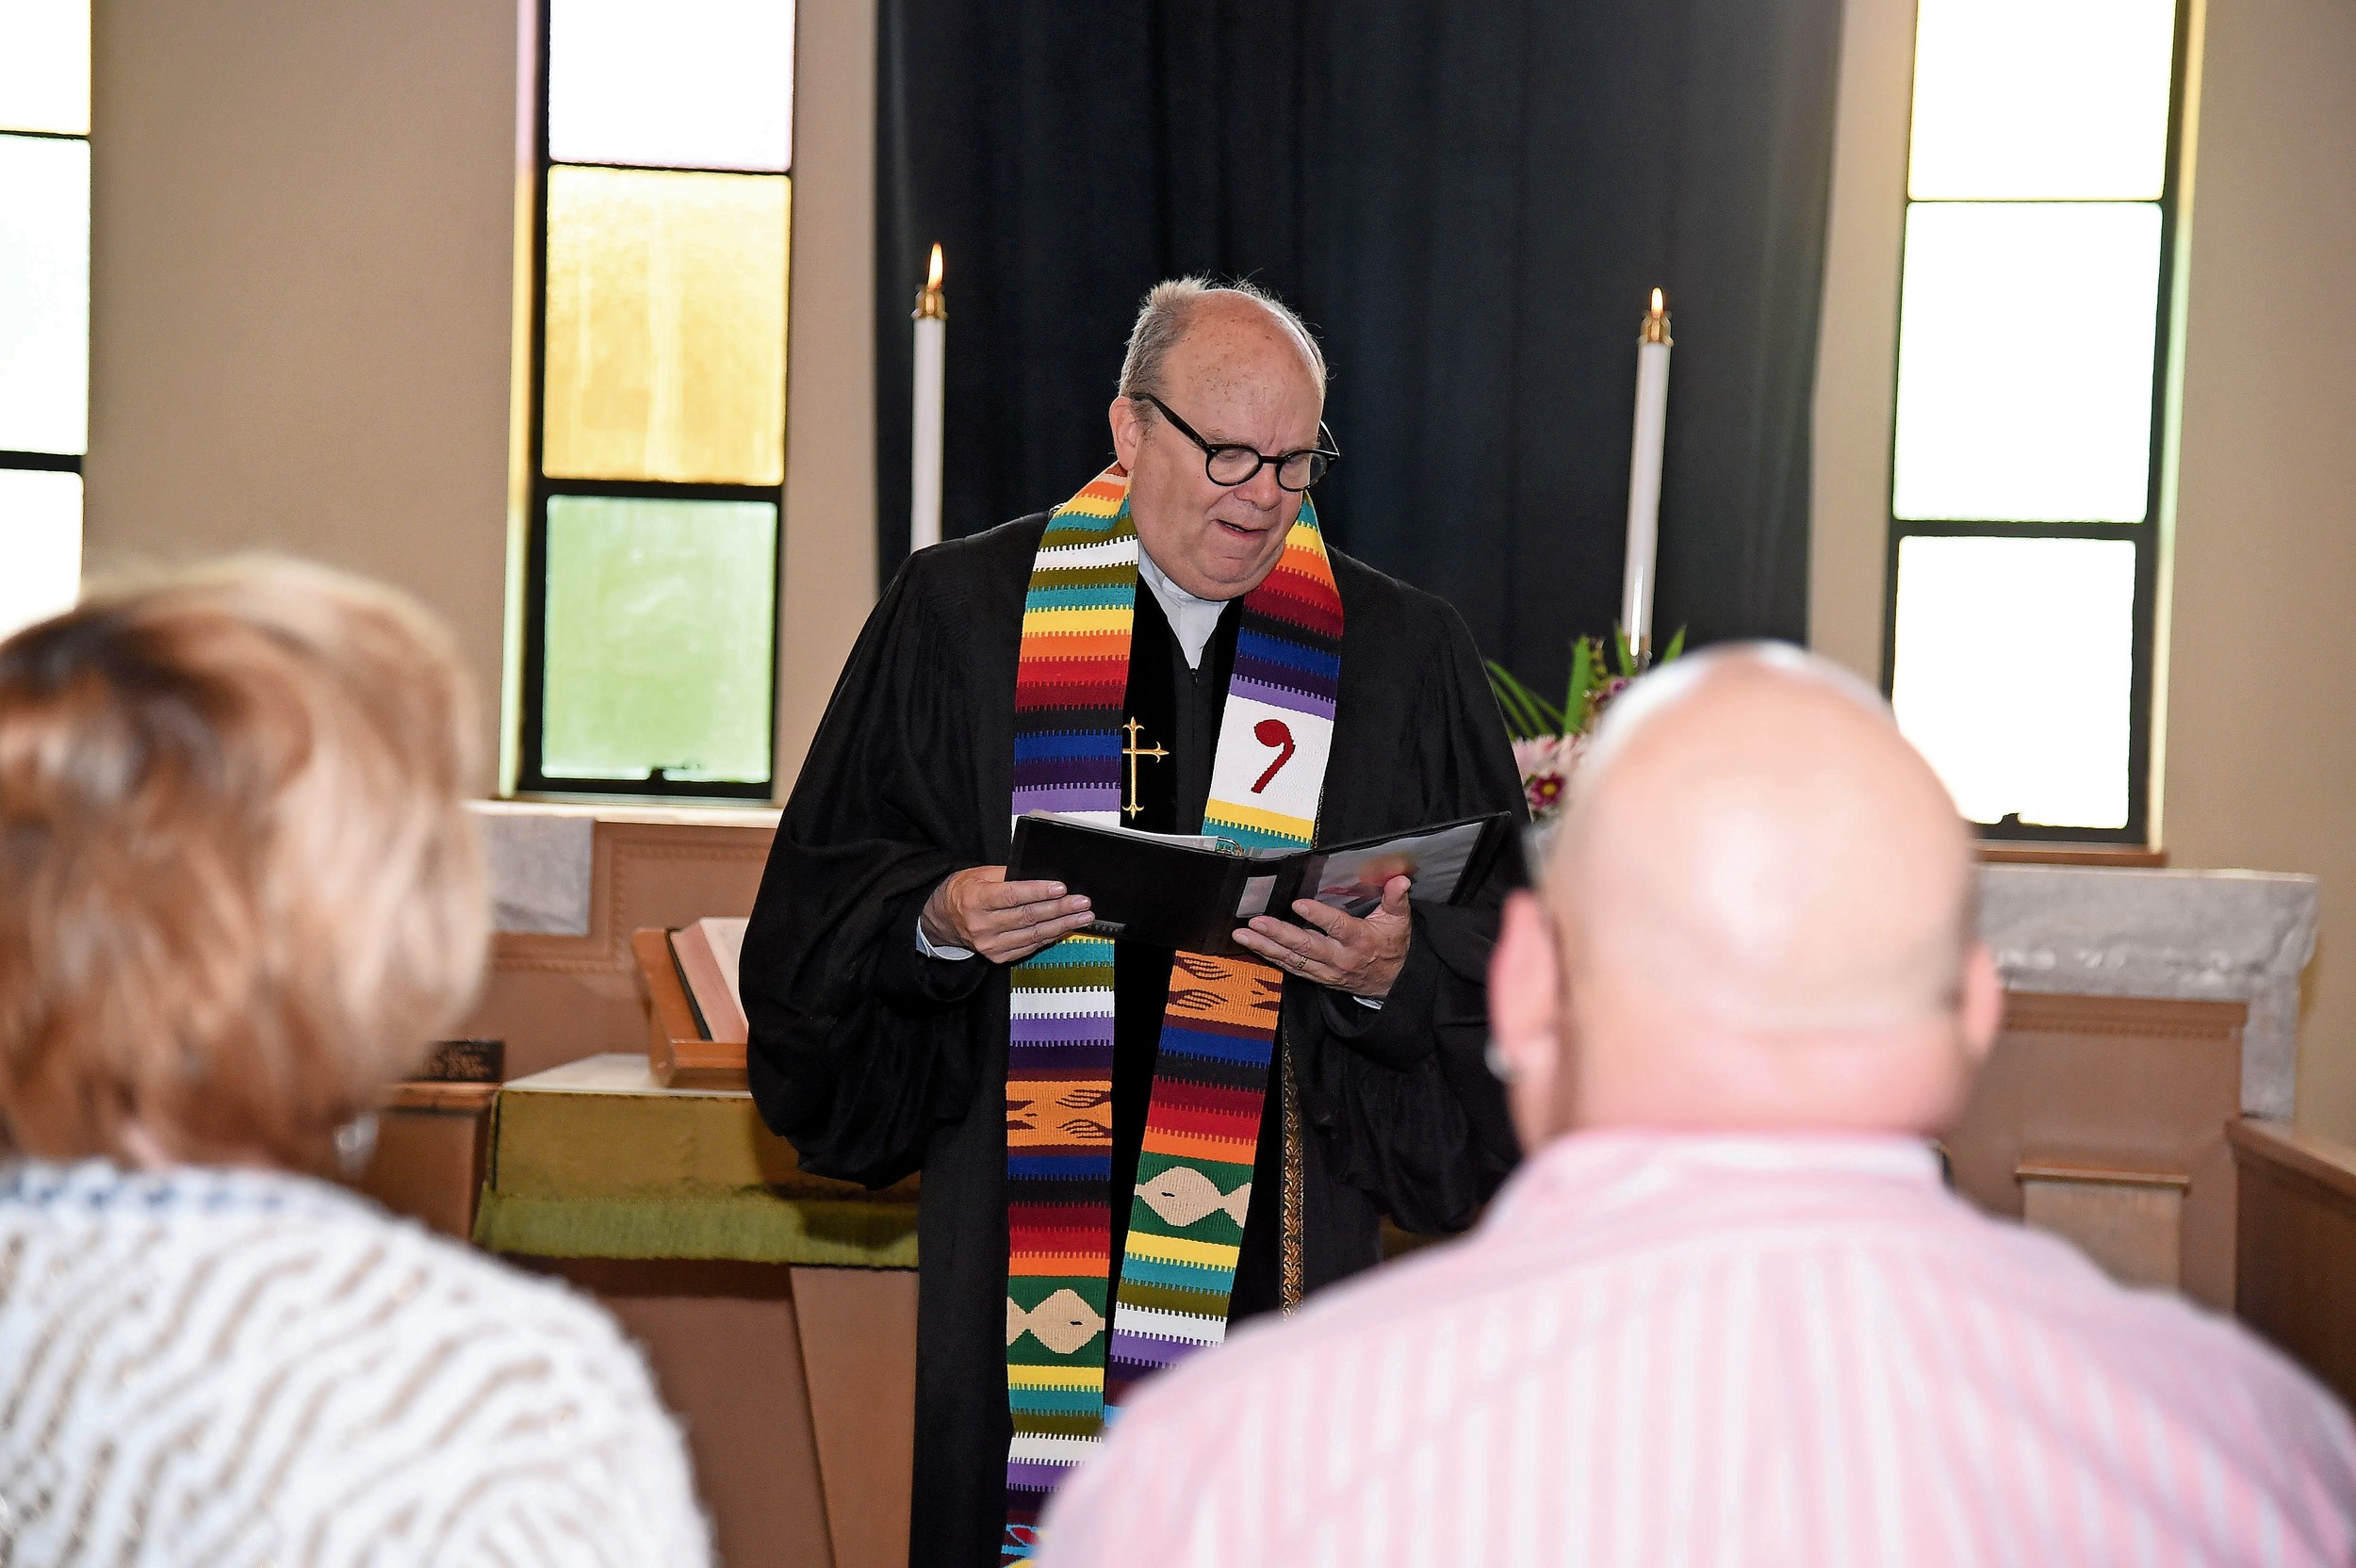 The Rev. Ron Garner, the church's pastor, presided over the ceremony.